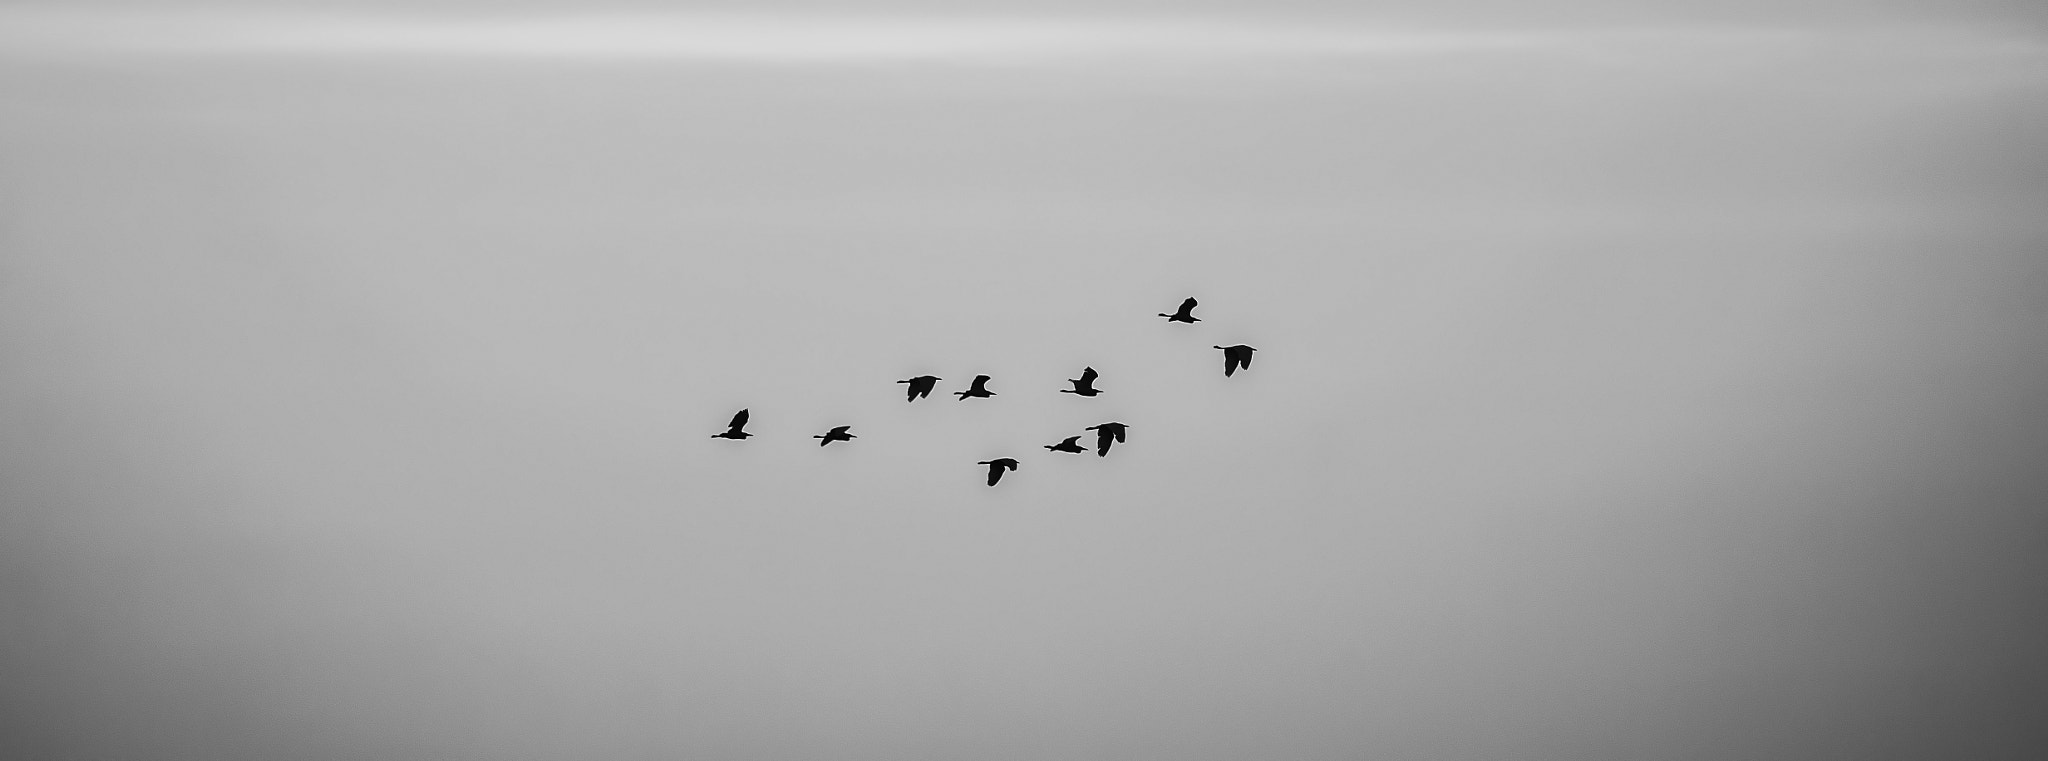 Photograph birds by arpan choudhury on 500px